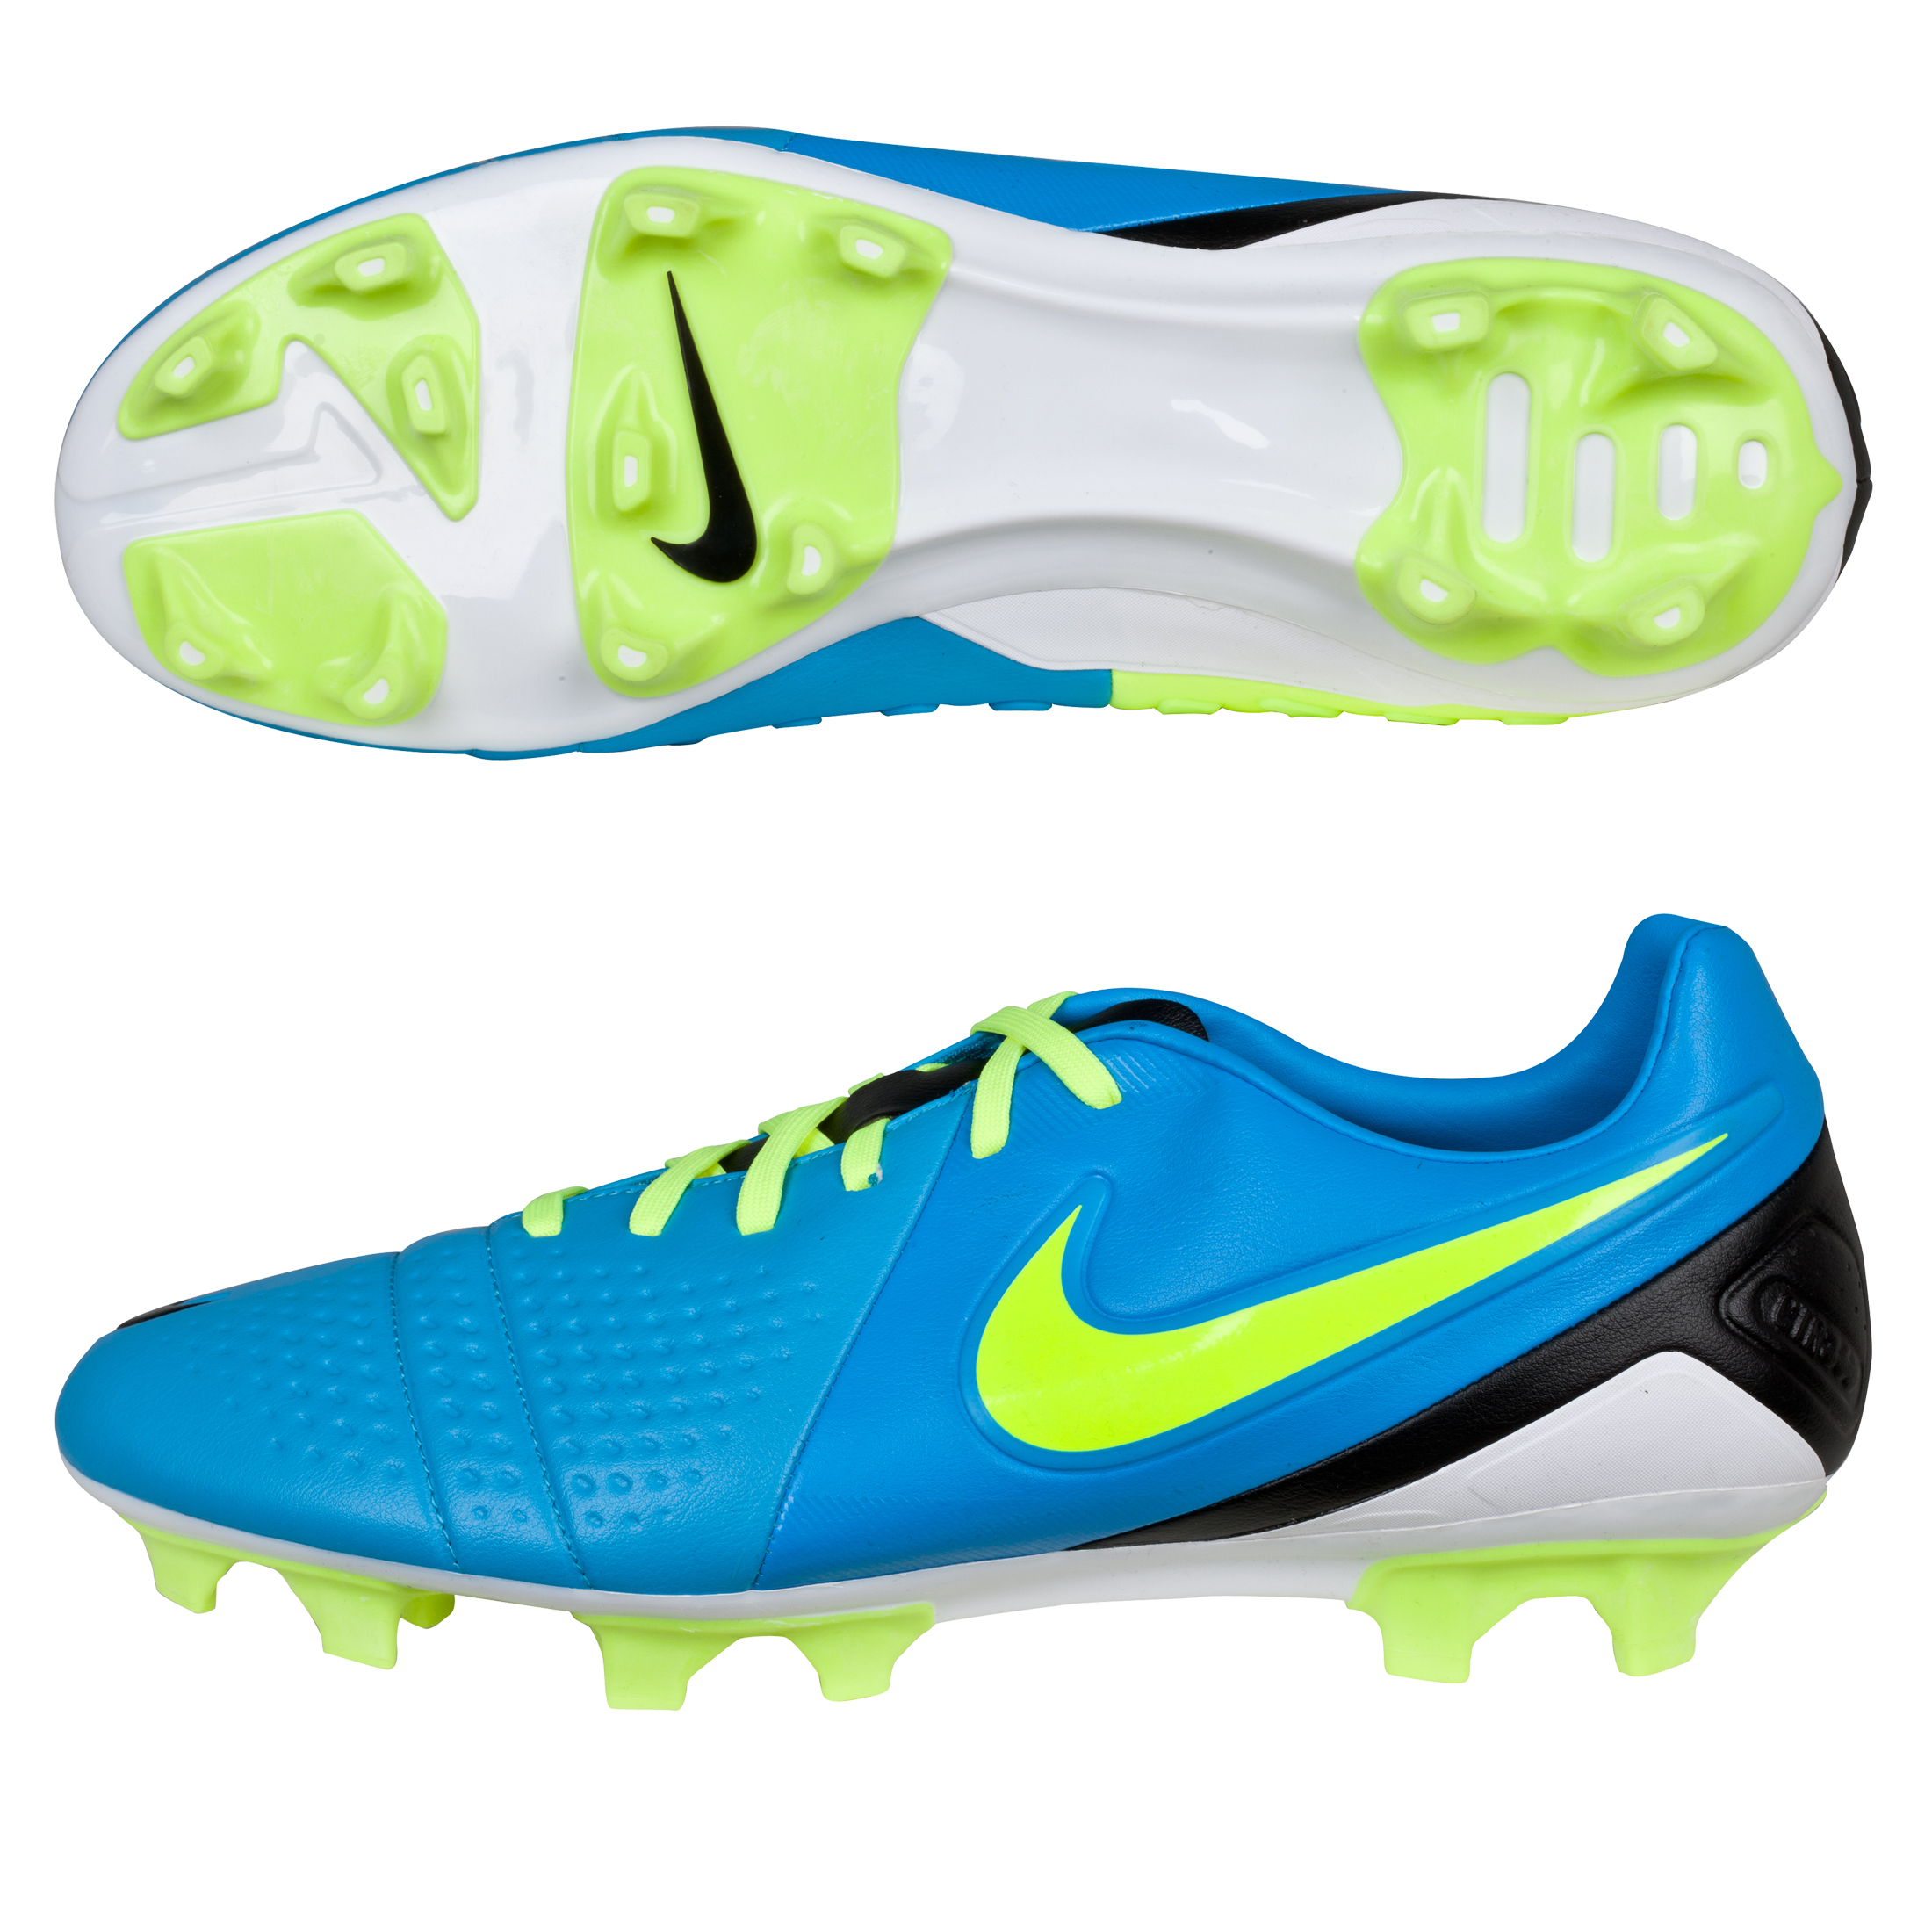 Nike CTR360 Trequartista III Firm Ground Football Boots Blue